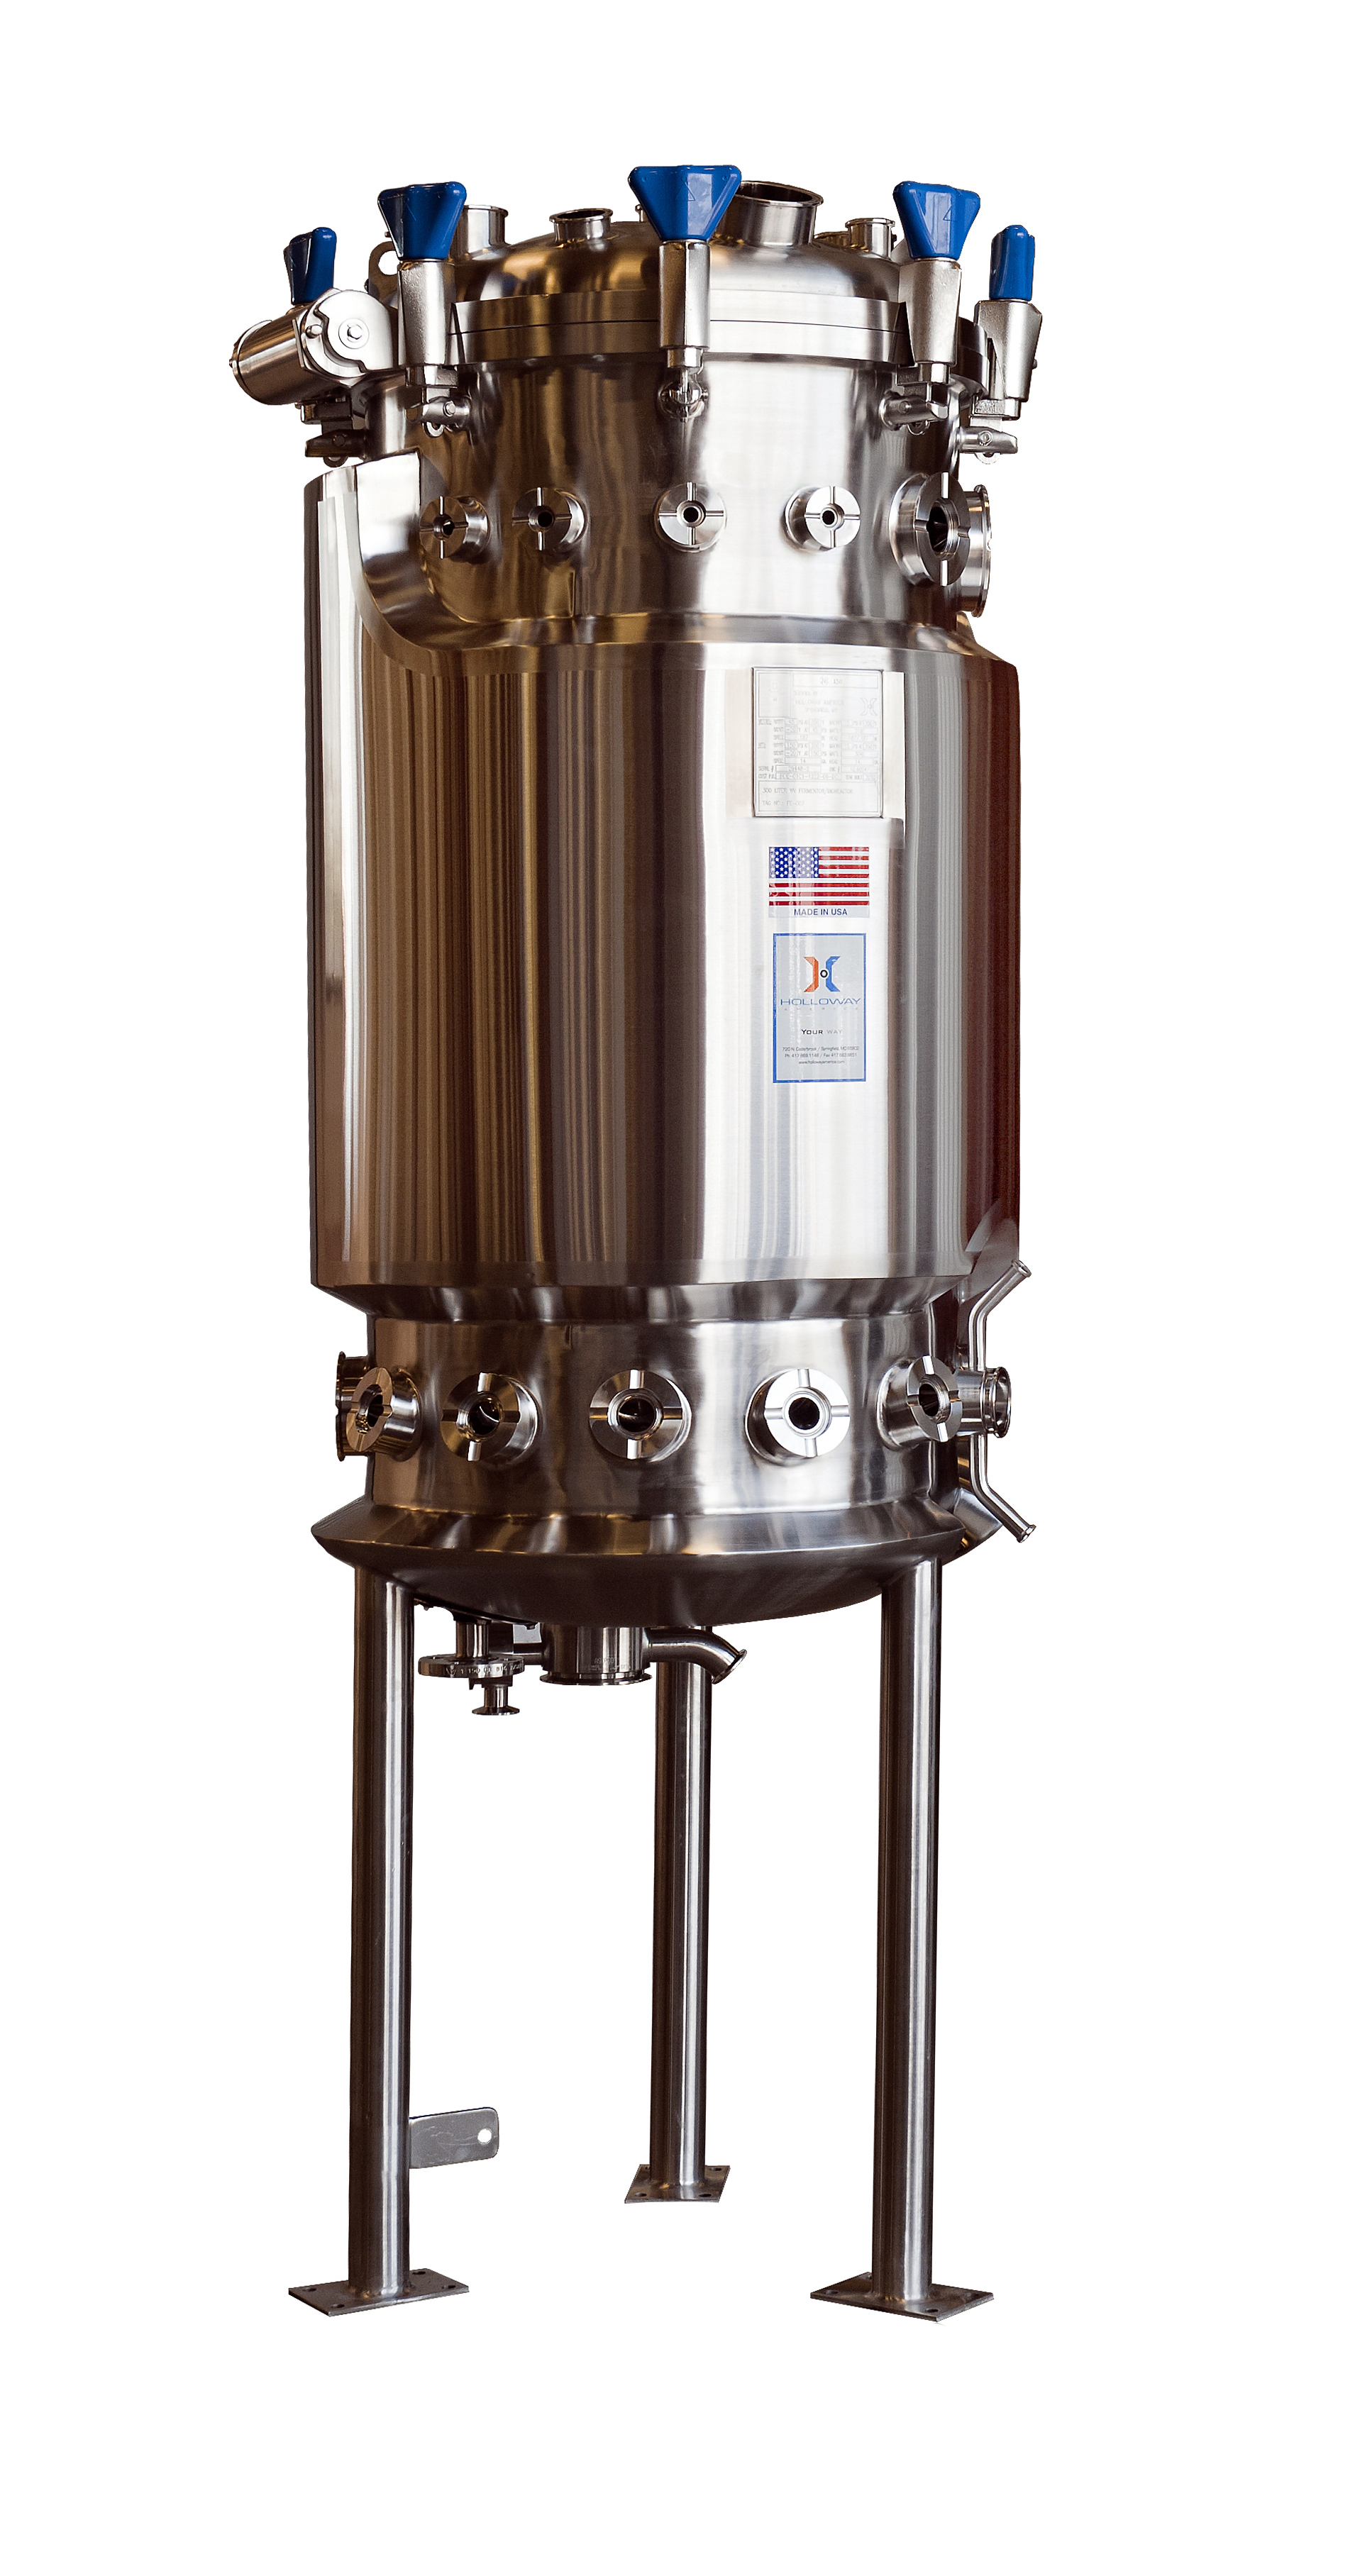 ASME pressure vessels can be bioreactors, like this one.